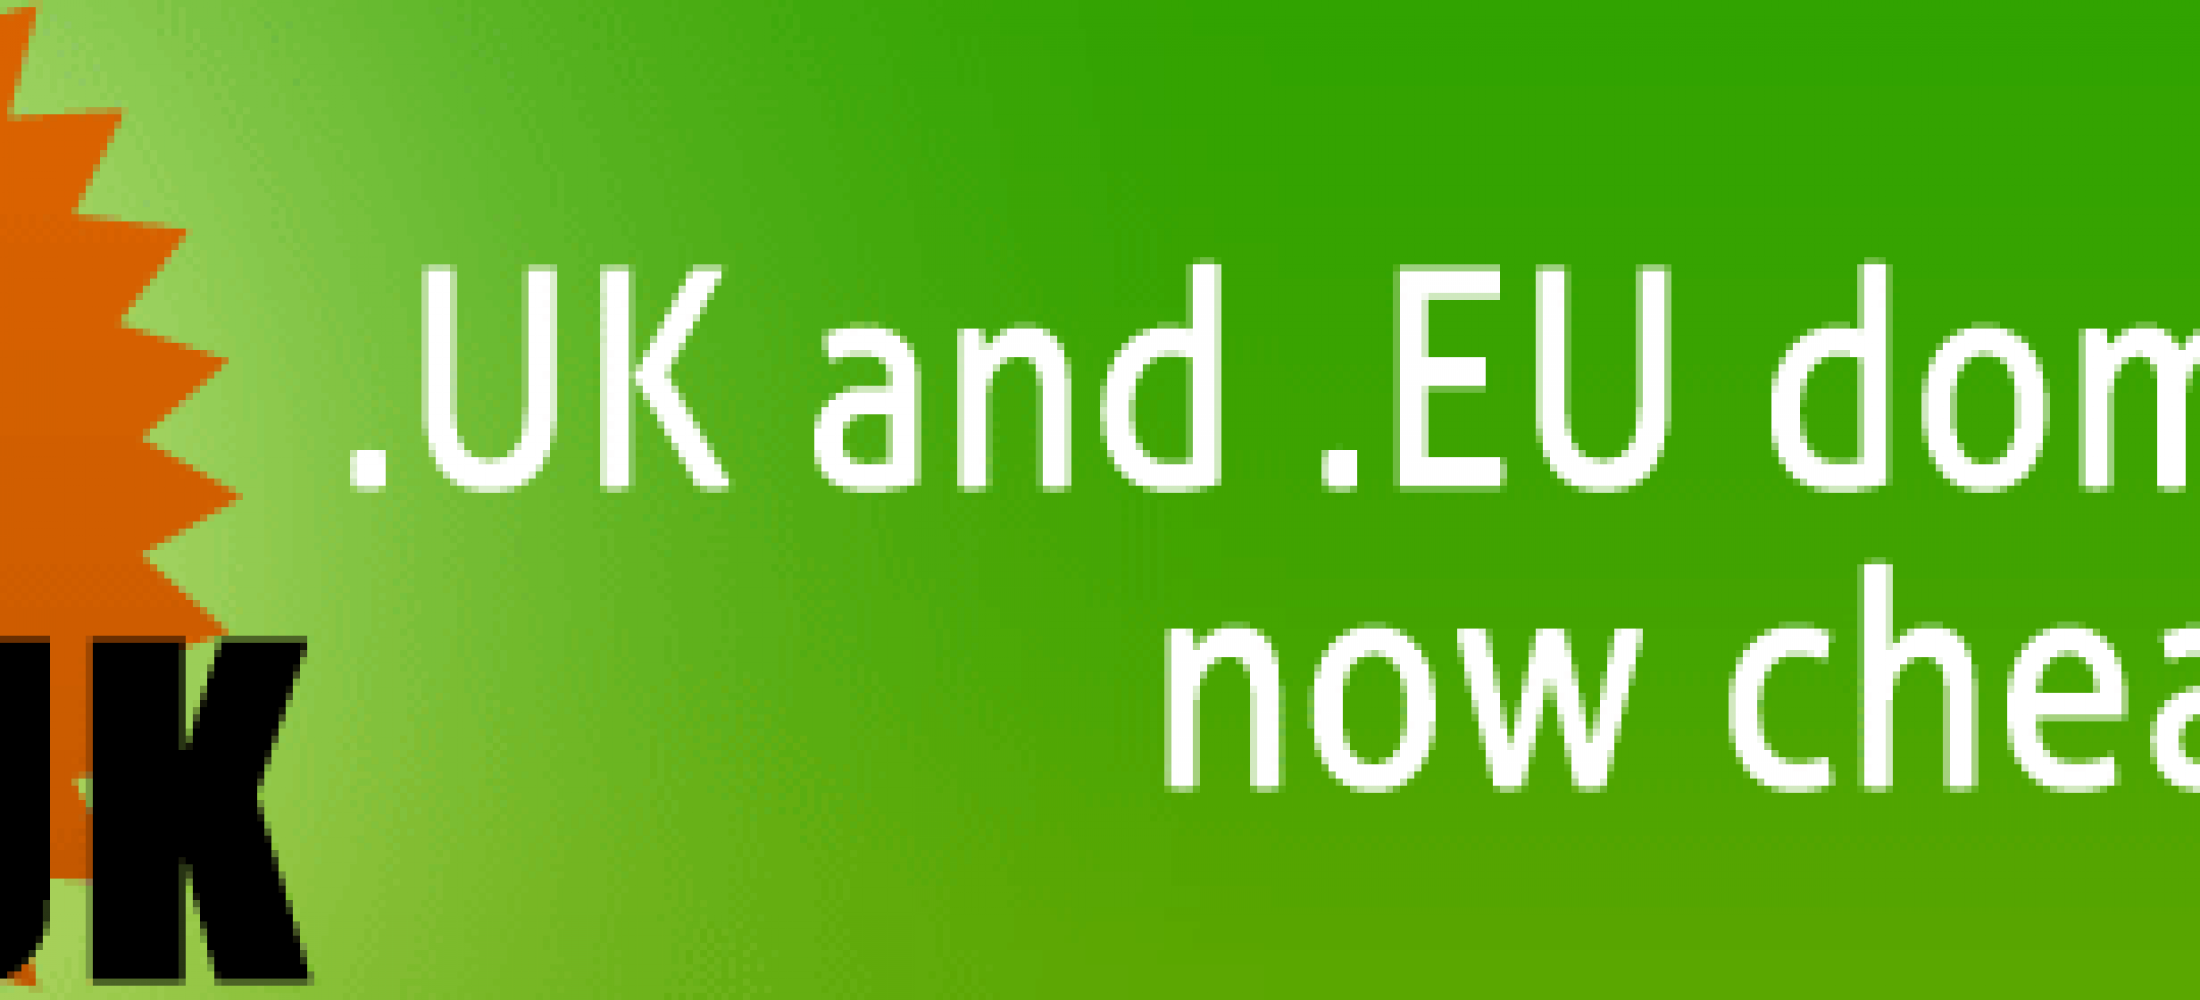 Lower .EU and .UK domain registration prices